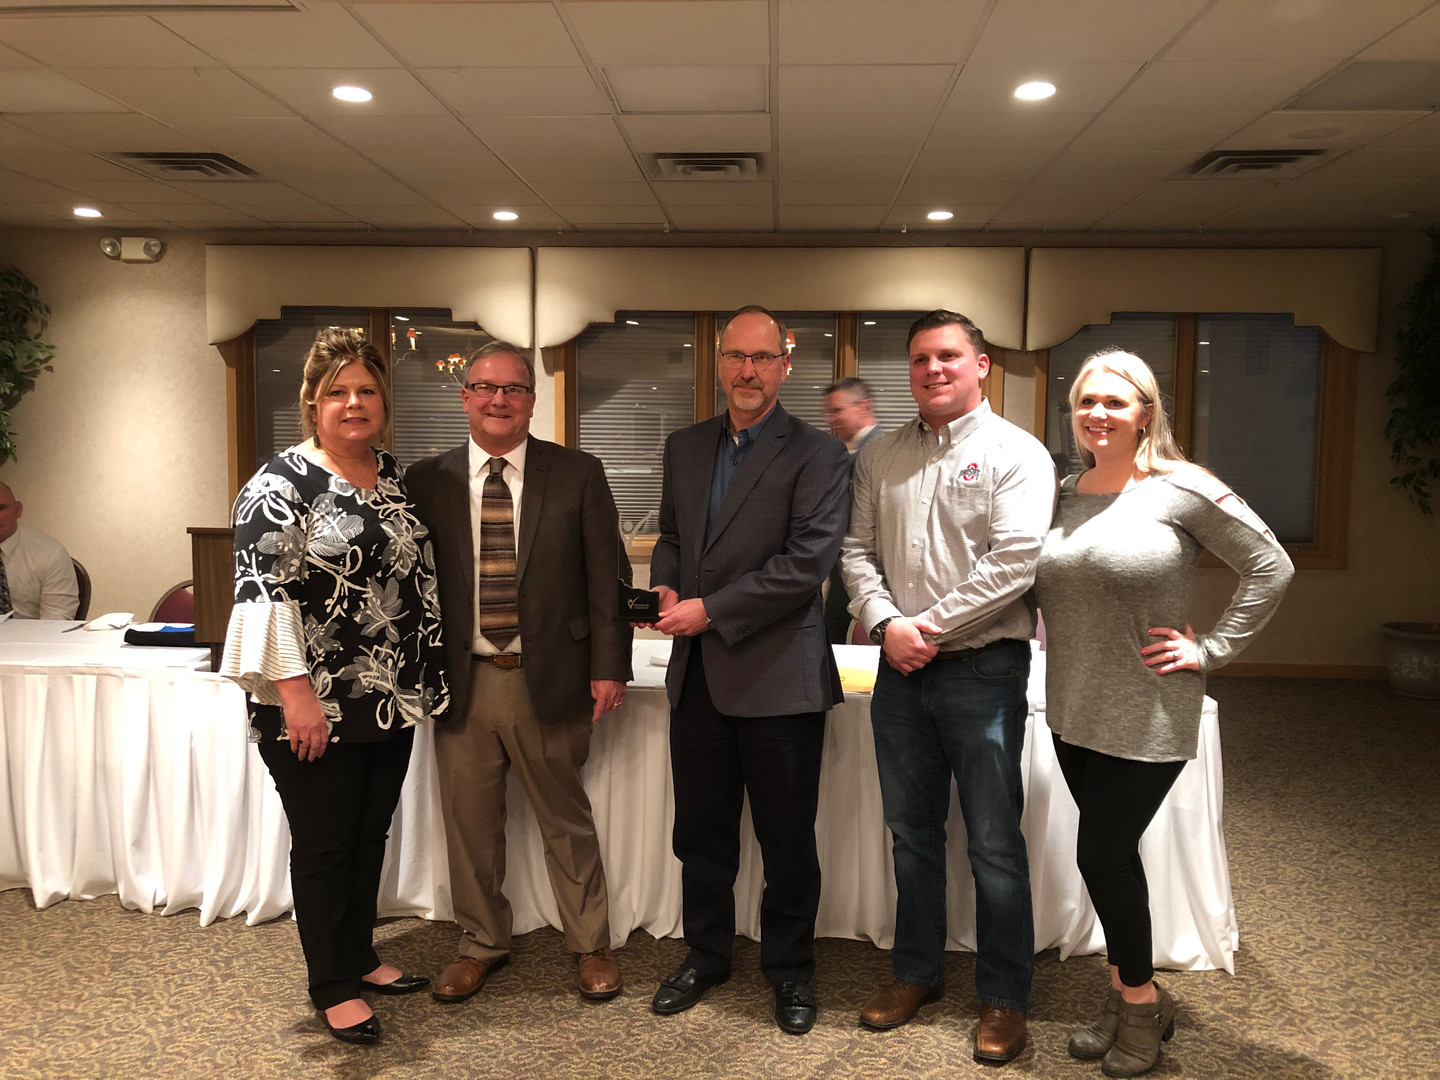 Jim Subler - 2020 Citizen of the Year